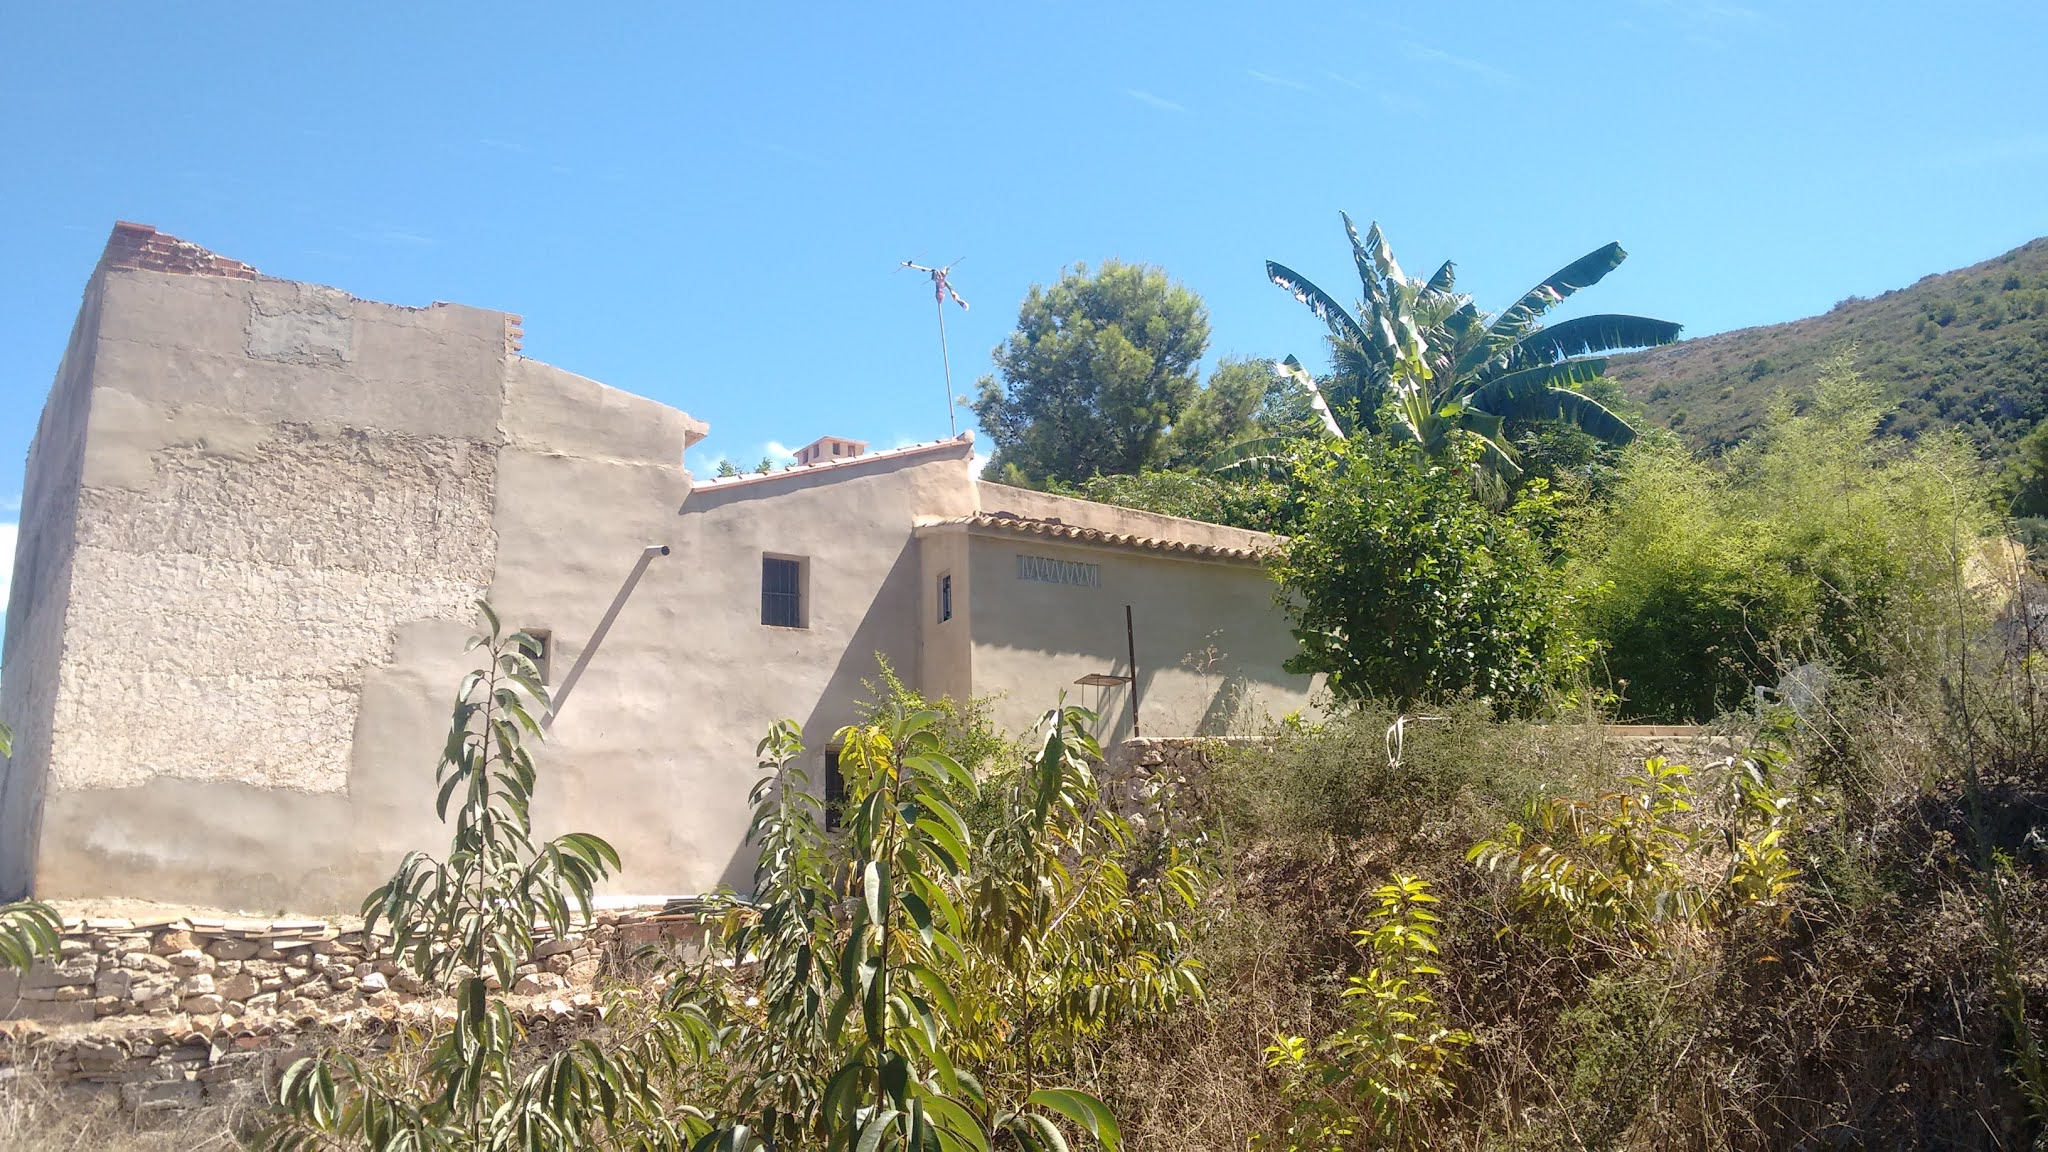 Permaculture community in Spain